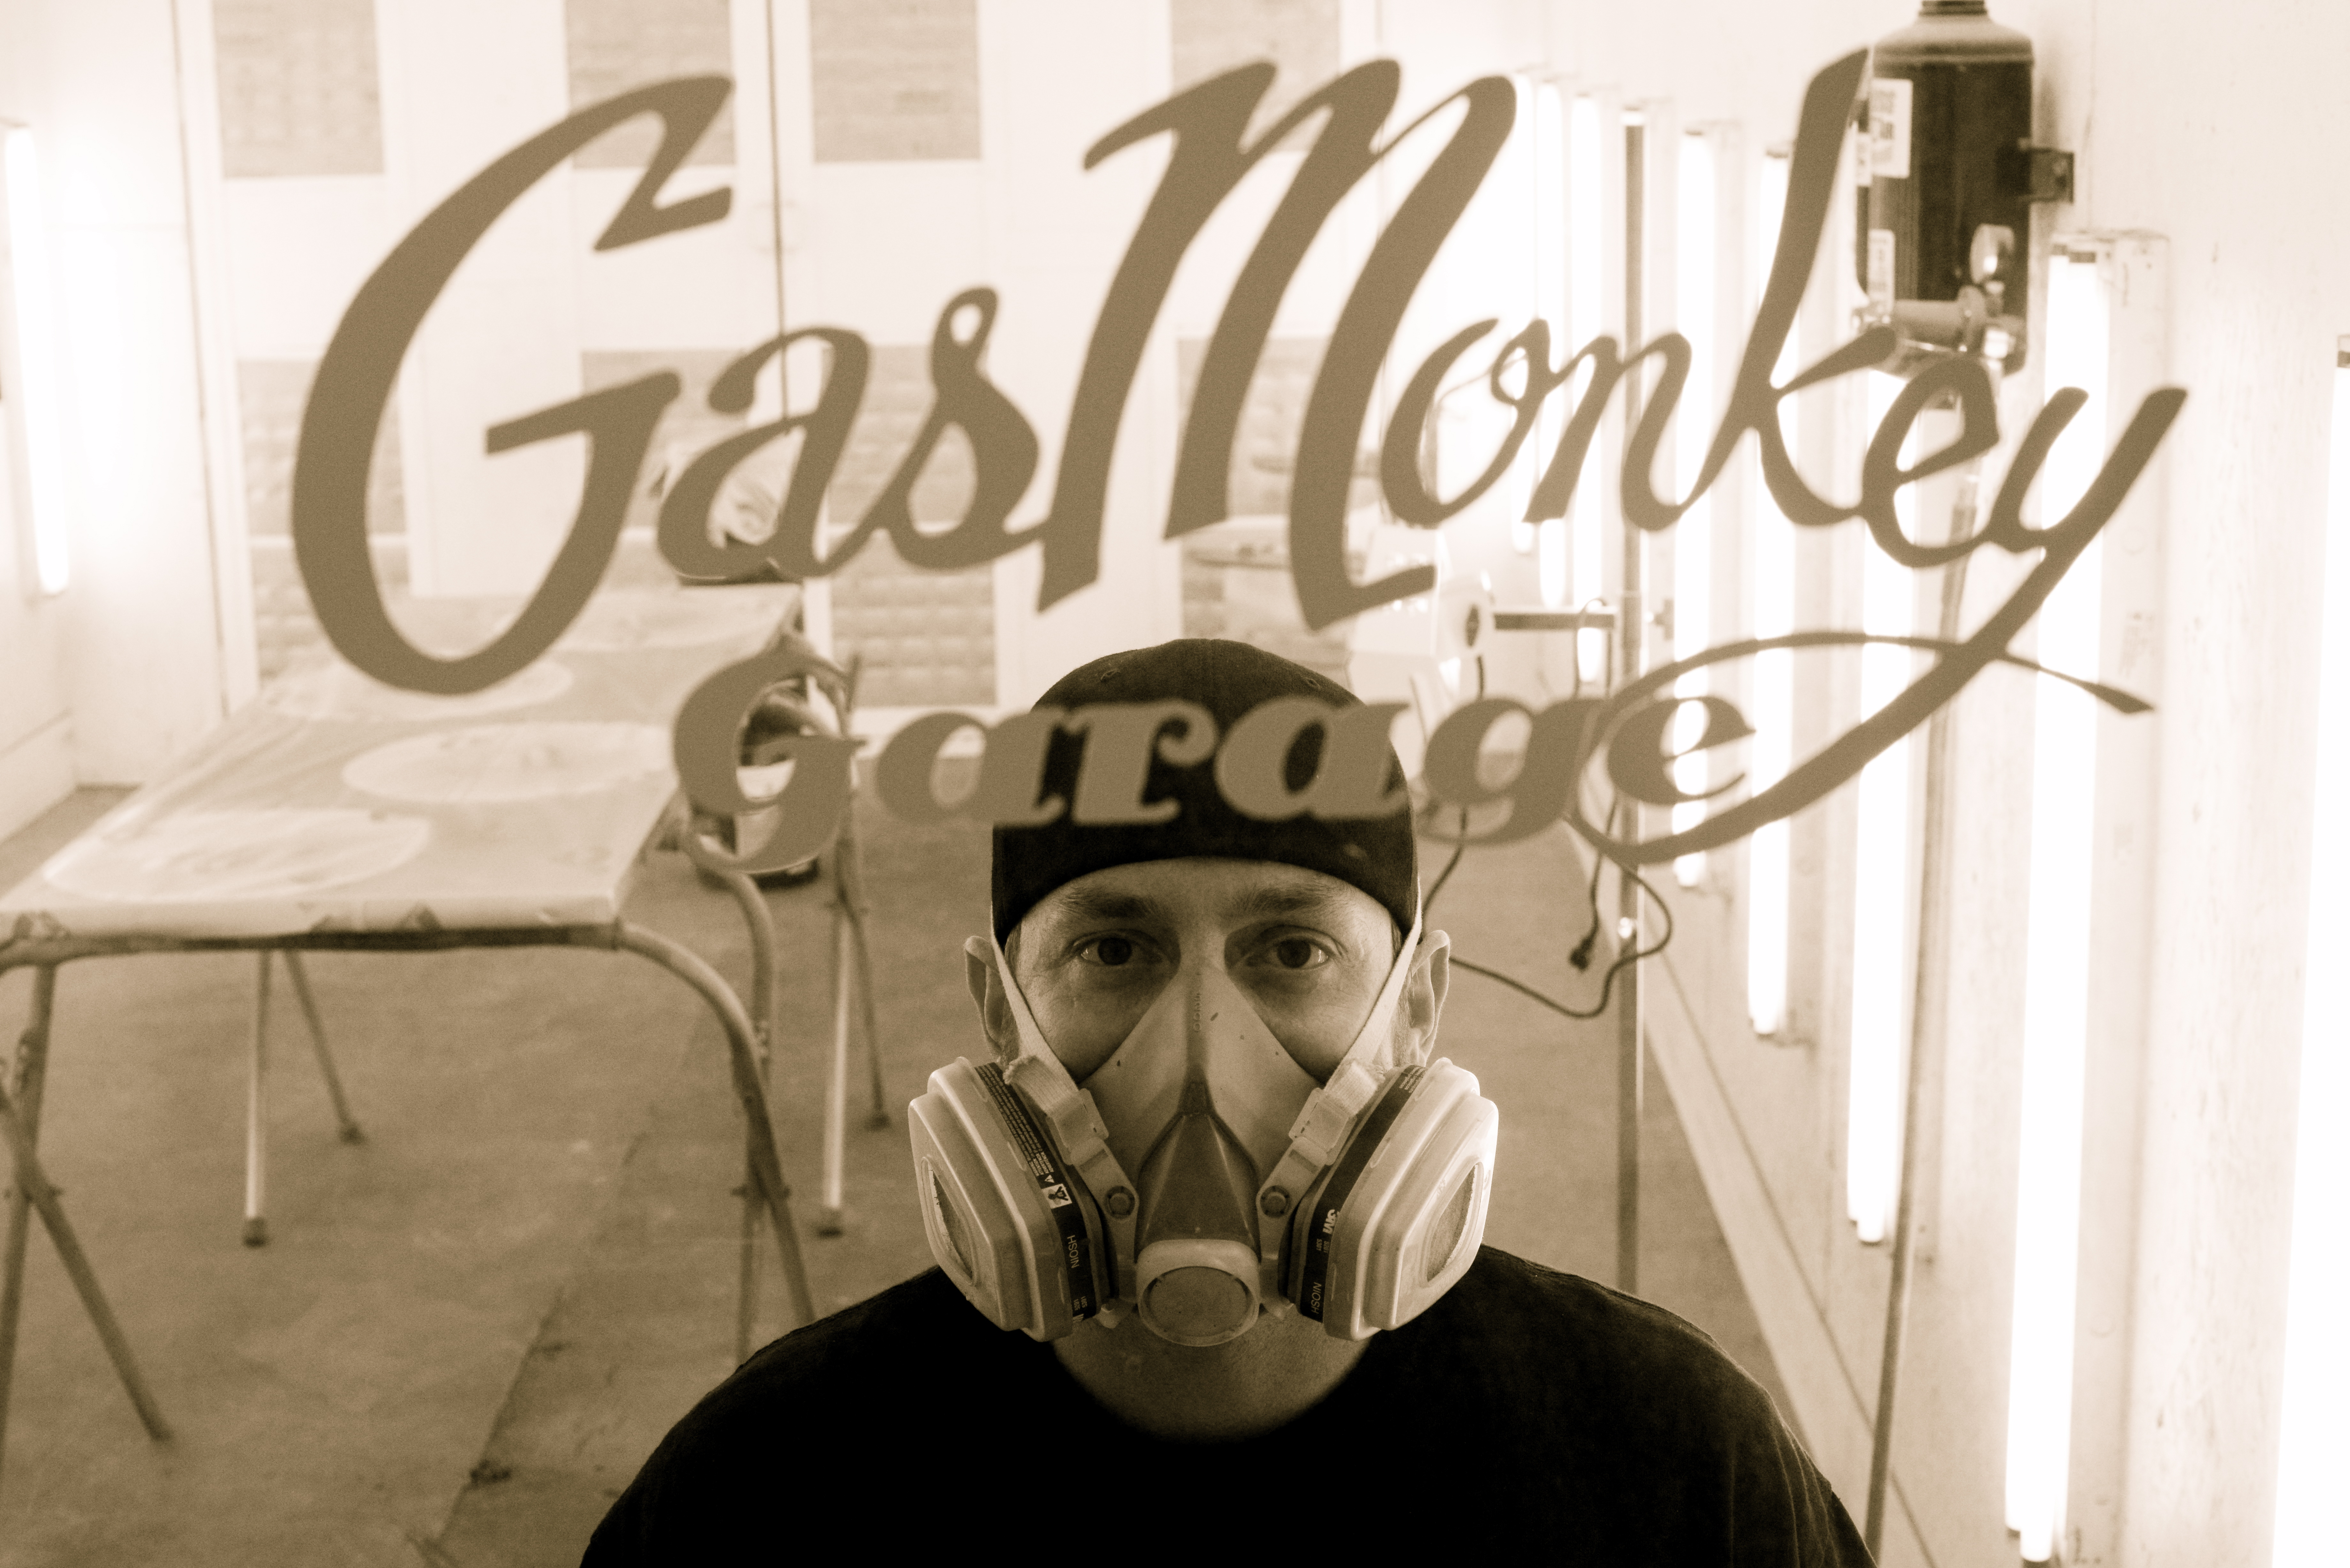 fast-n-loud-on-discovery-channel-s-series-fast-n-loud-with-gas-monkey-garage-wallpaper-wp5206450